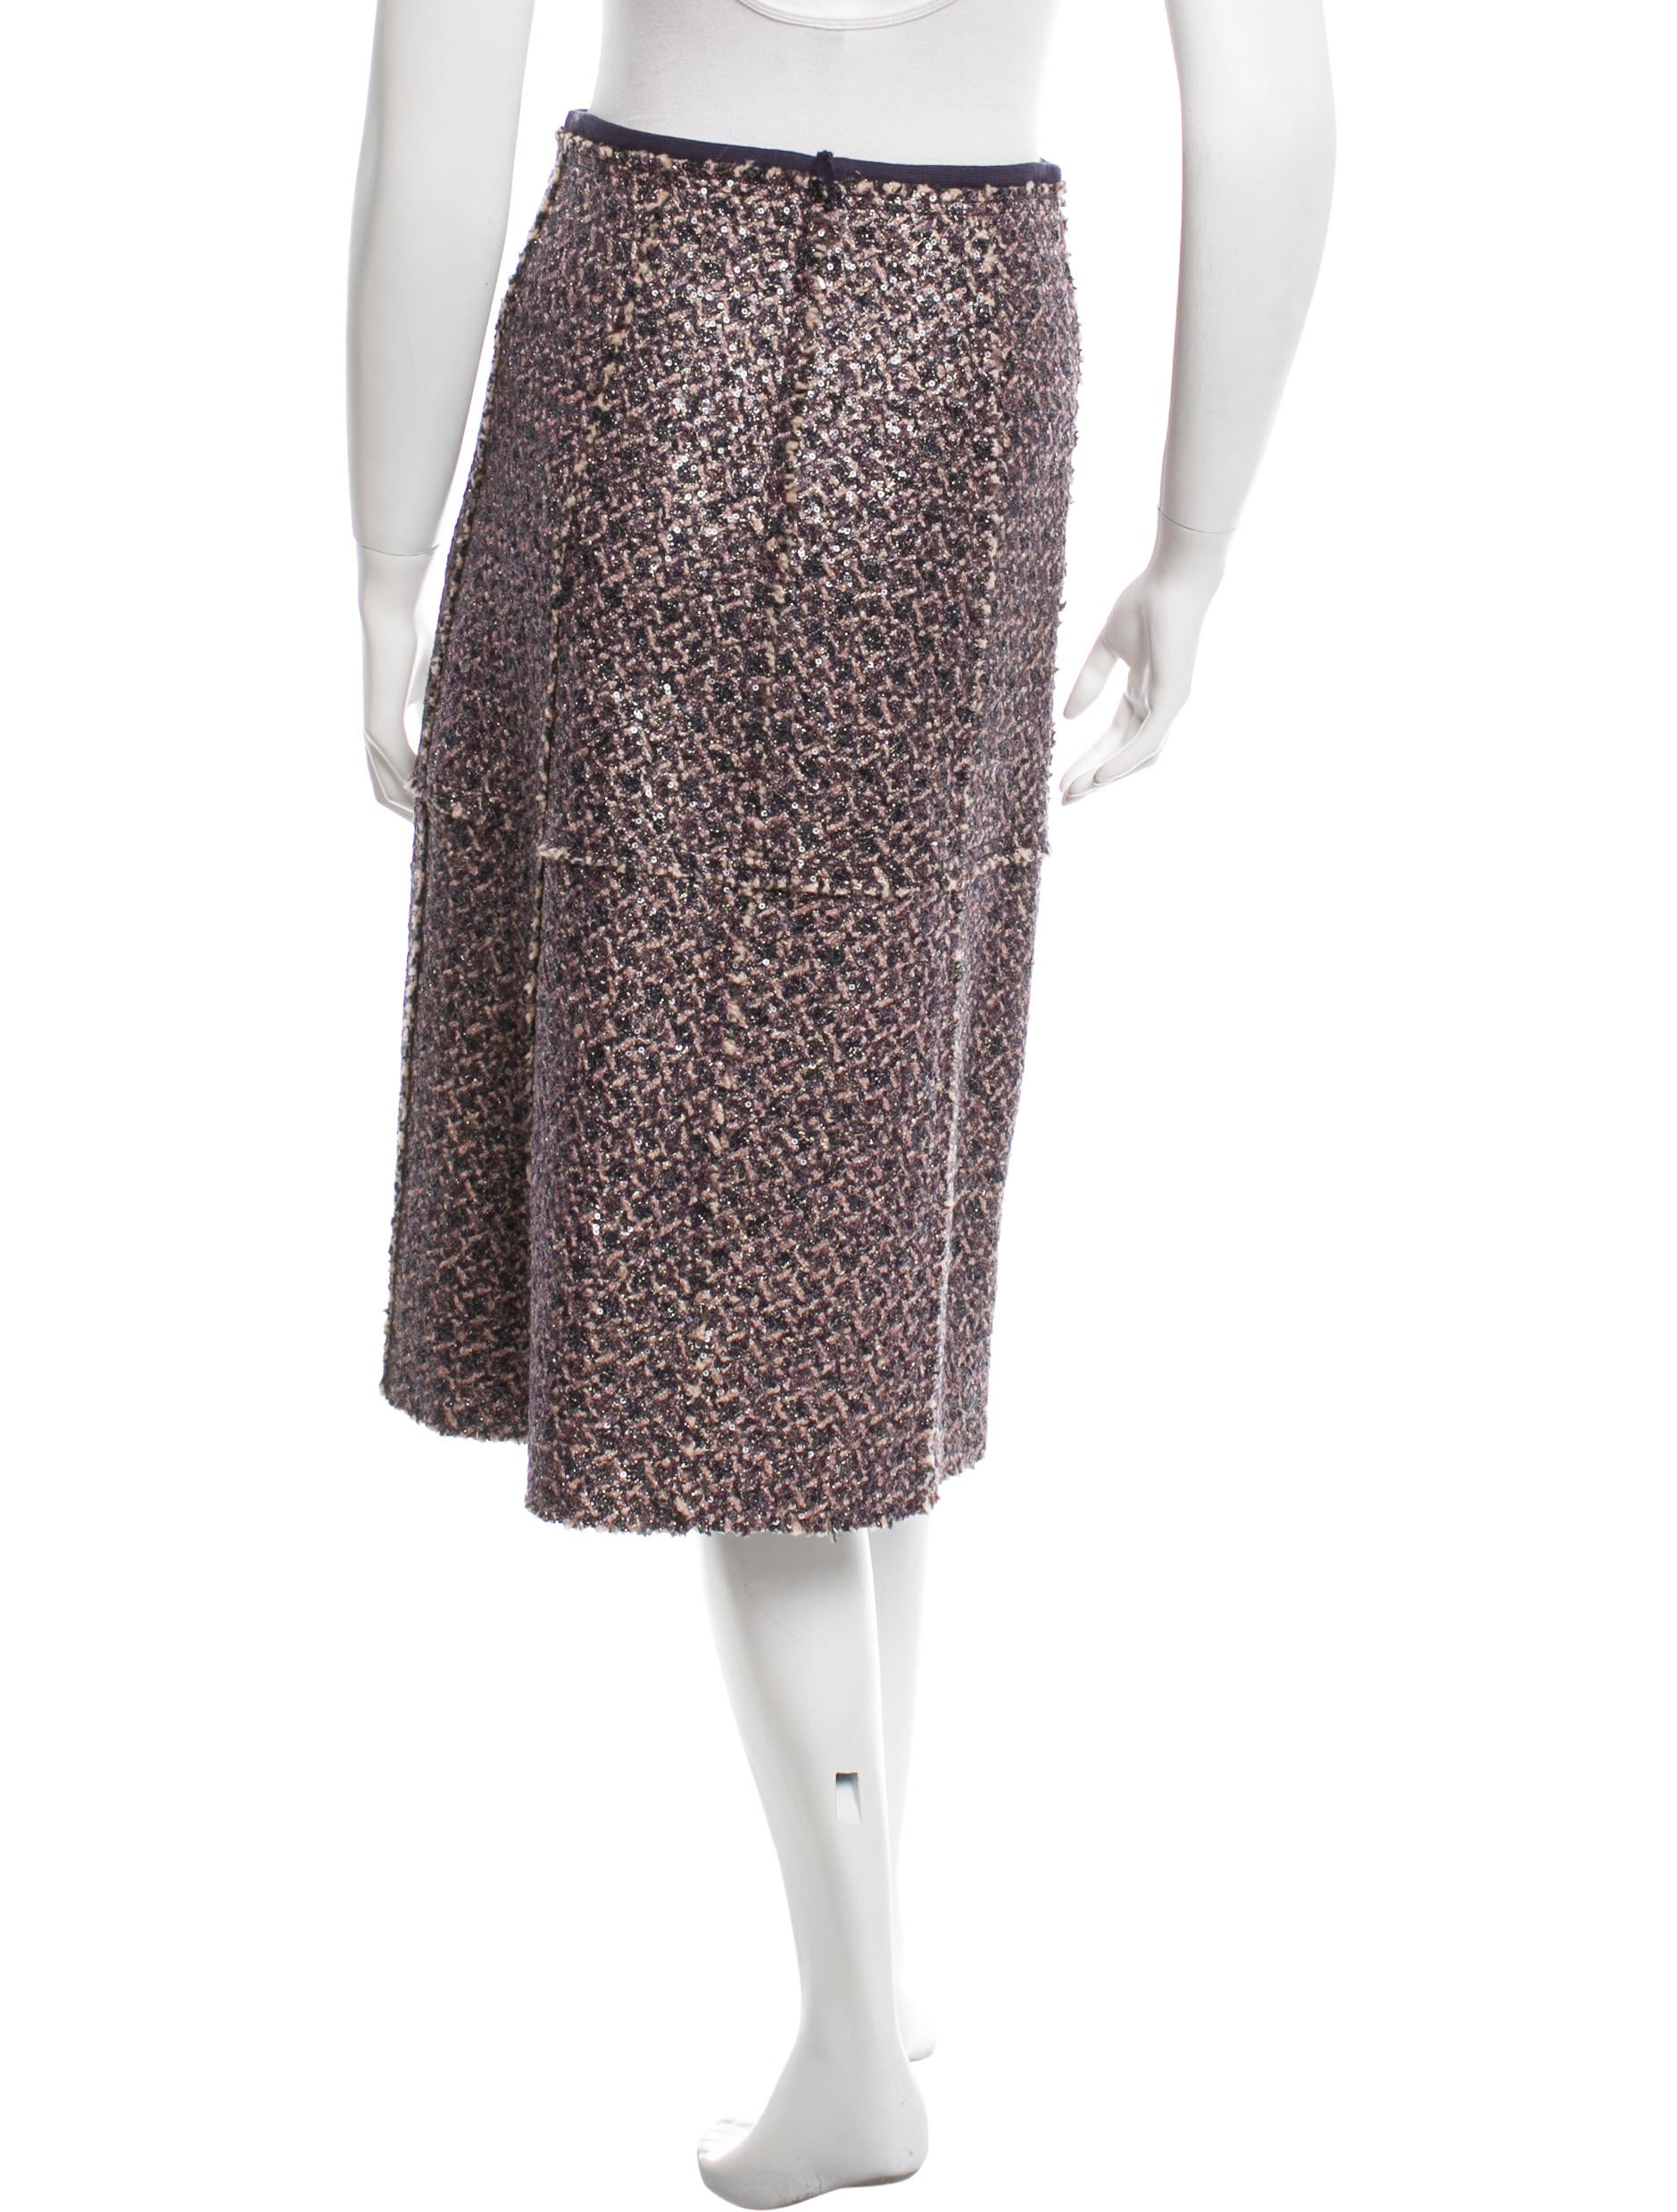 burch sequined knee length skirt clothing